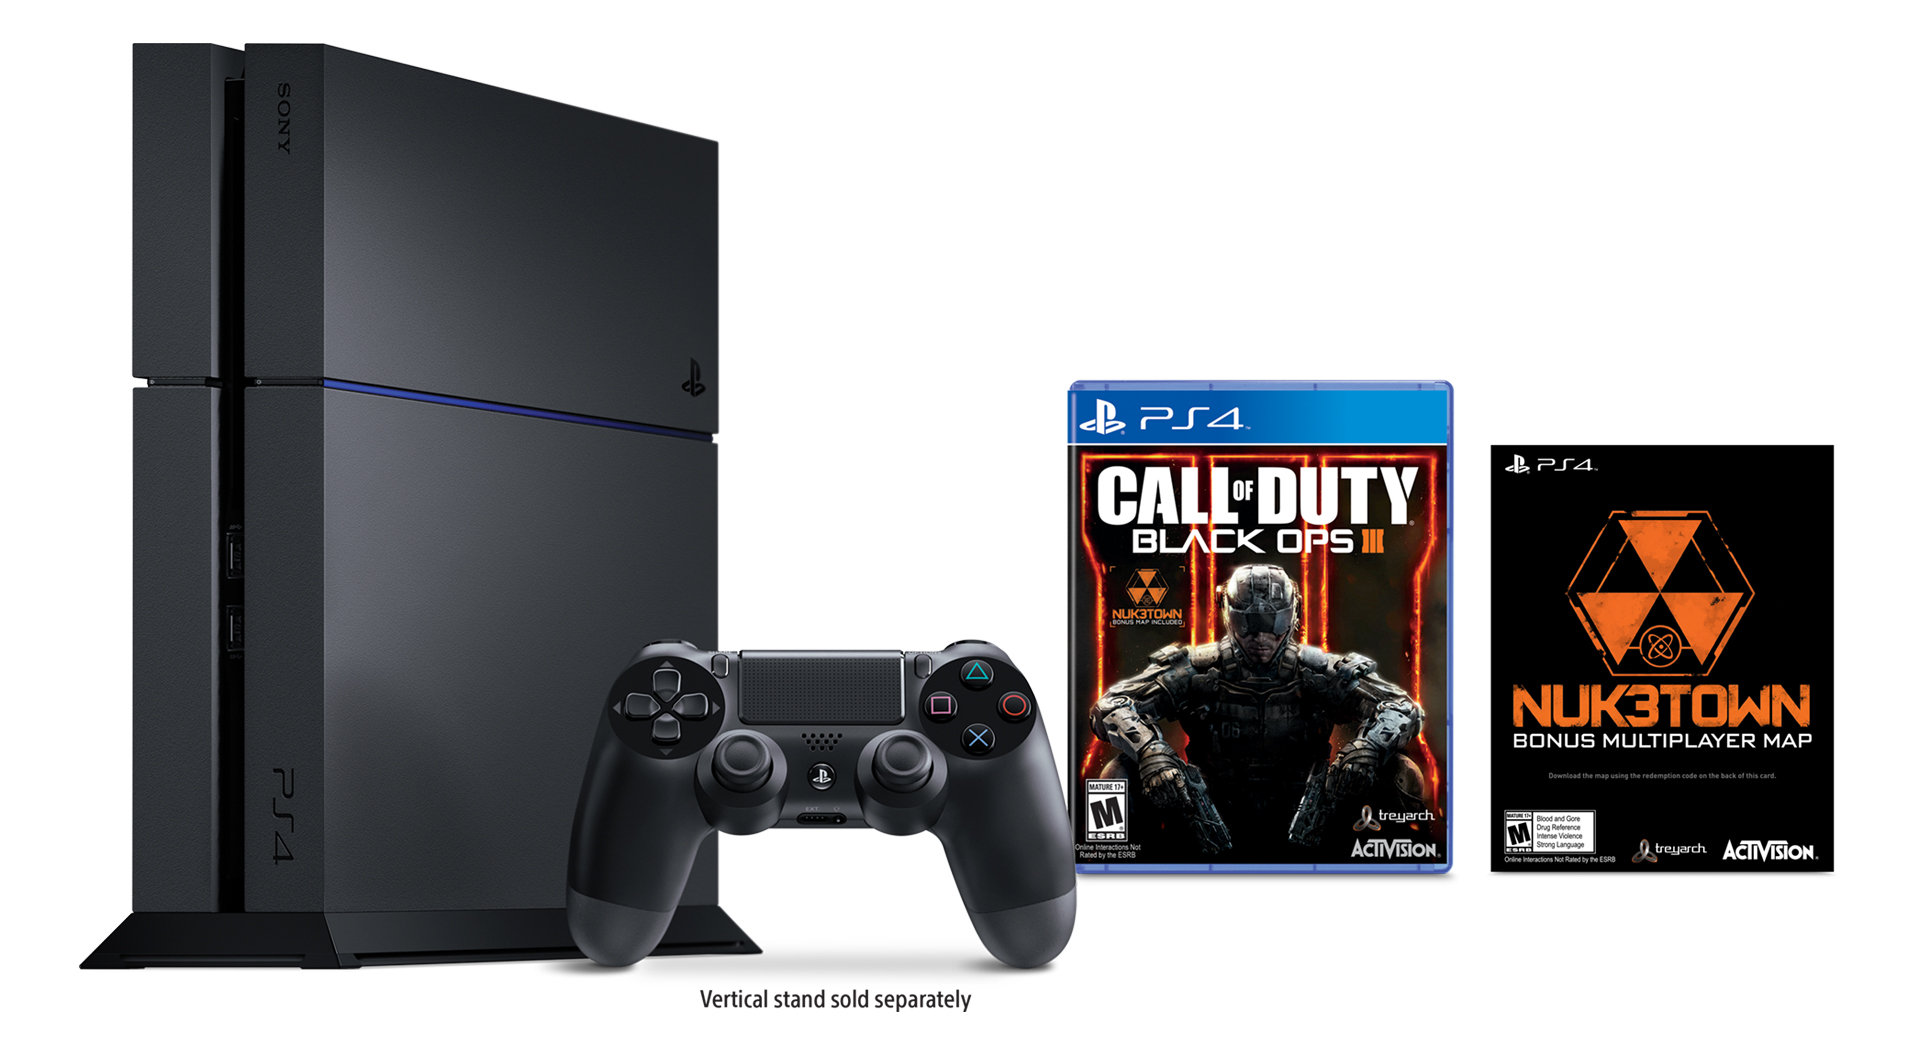 Playstation 4 image library stock PS4 Systems | PS4 Bundles – PlayStation 4 Systems and Bundles image library stock